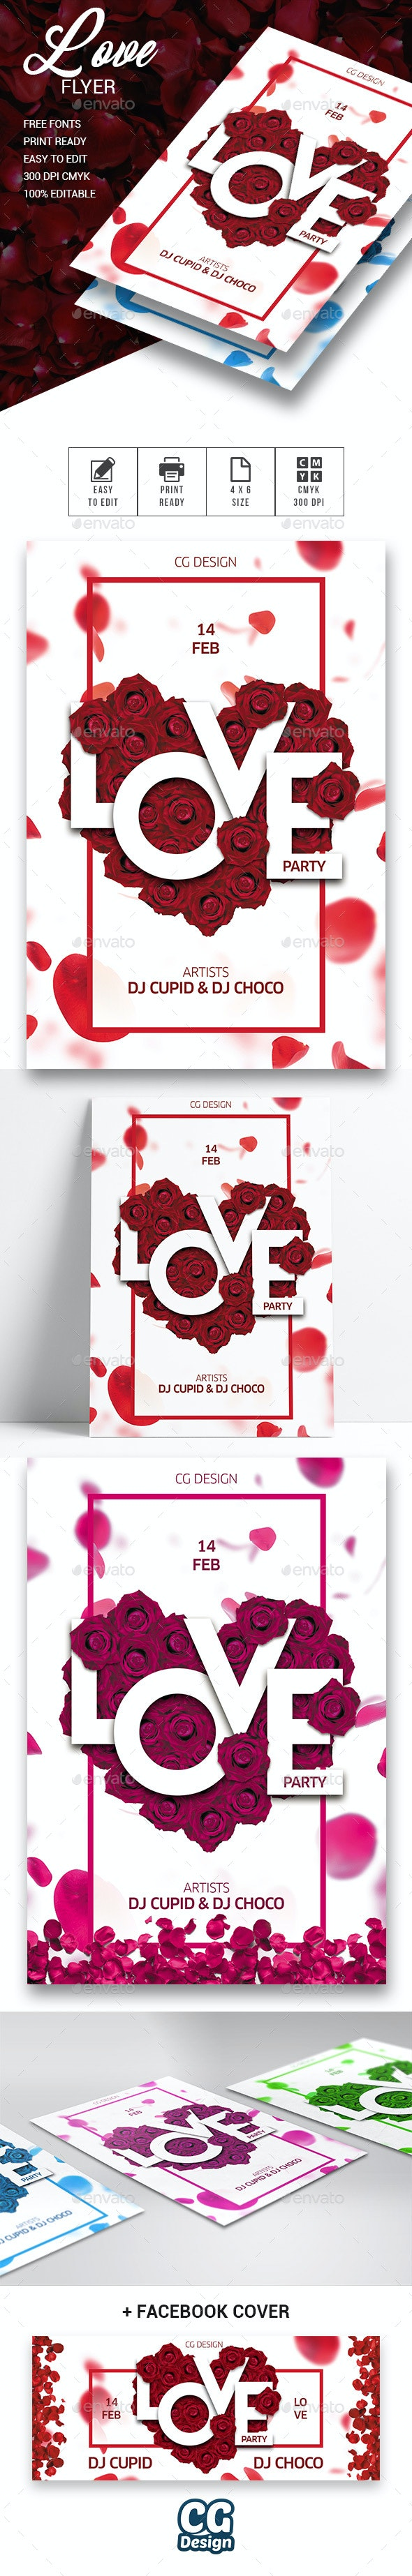 Love Flyer - Events Flyers